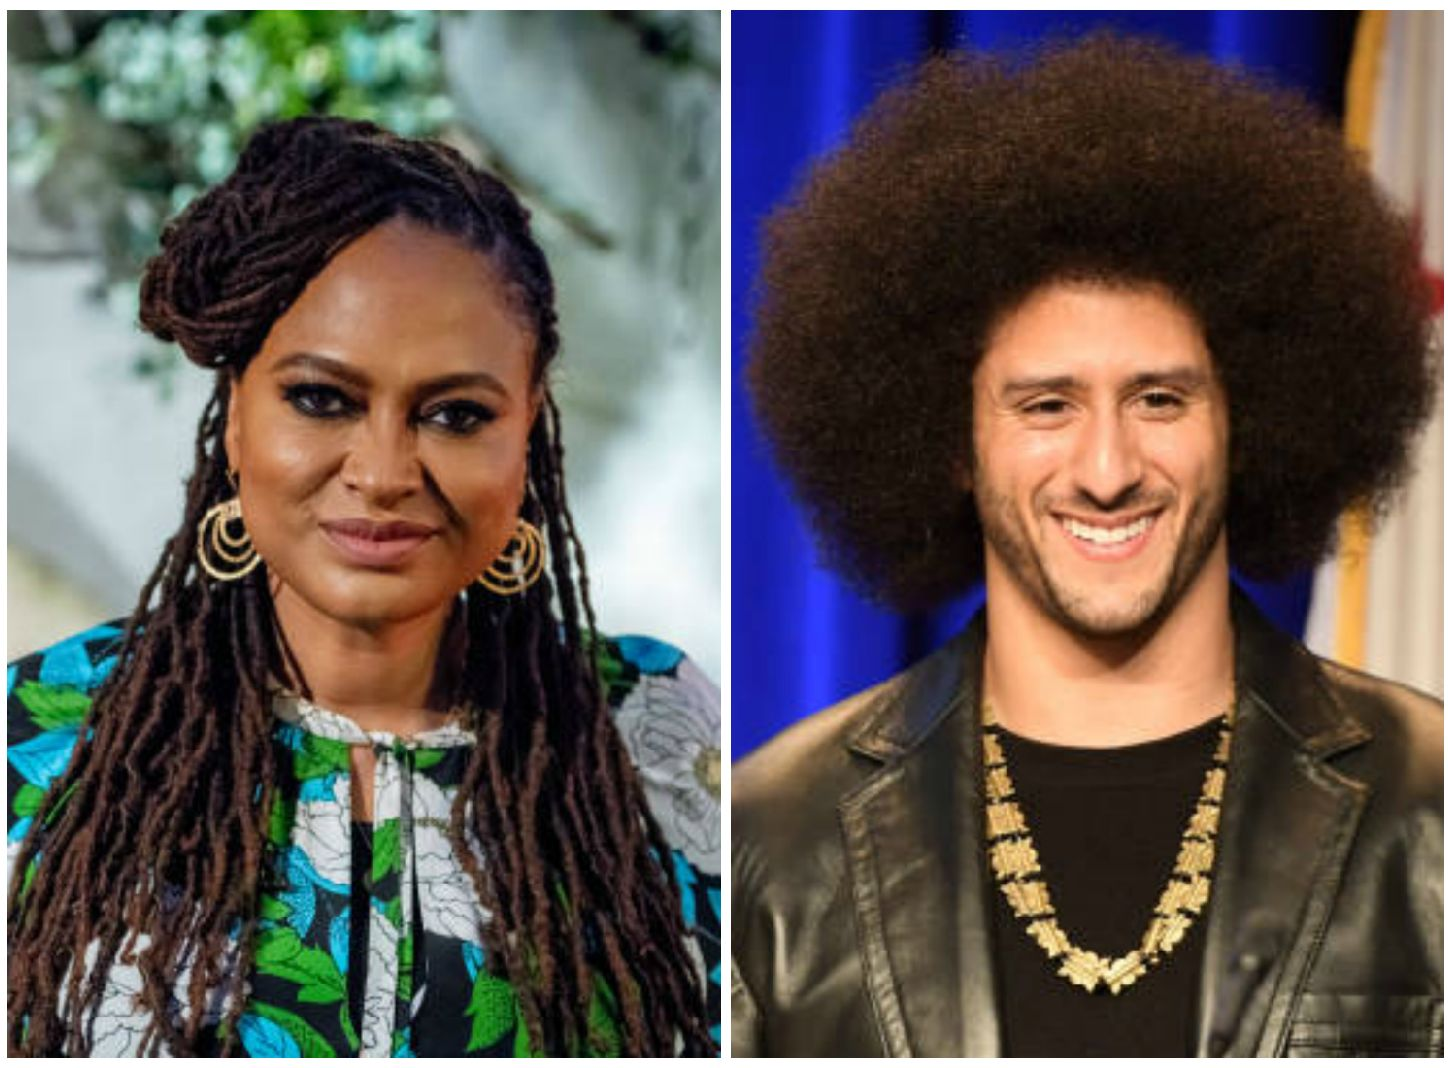 Ava DuVernay told Vanity Fair that she is planning a TV series based on Colin Kaepernick's high school days.